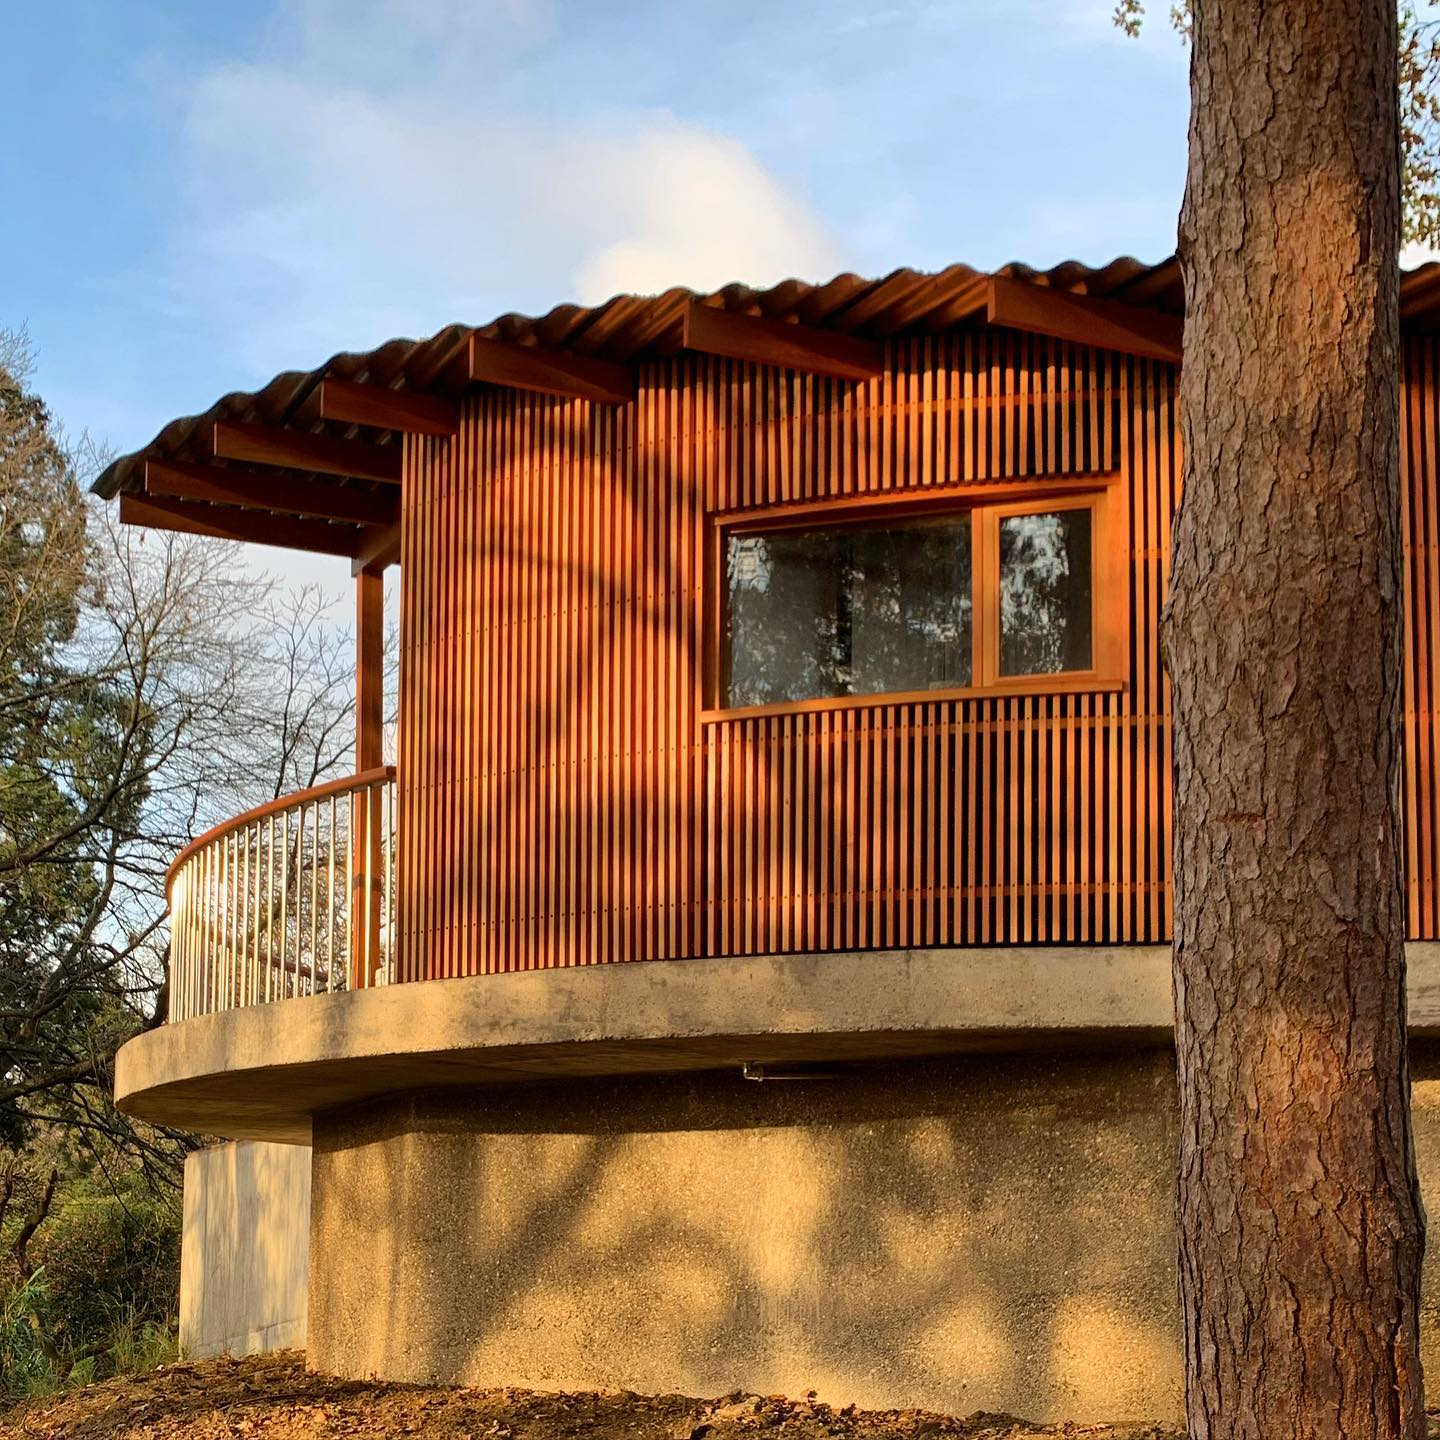 Cantilevered Pool house by the brilliant @surmanweston on our Surrey project ... The warm timber illuminated by the low sun